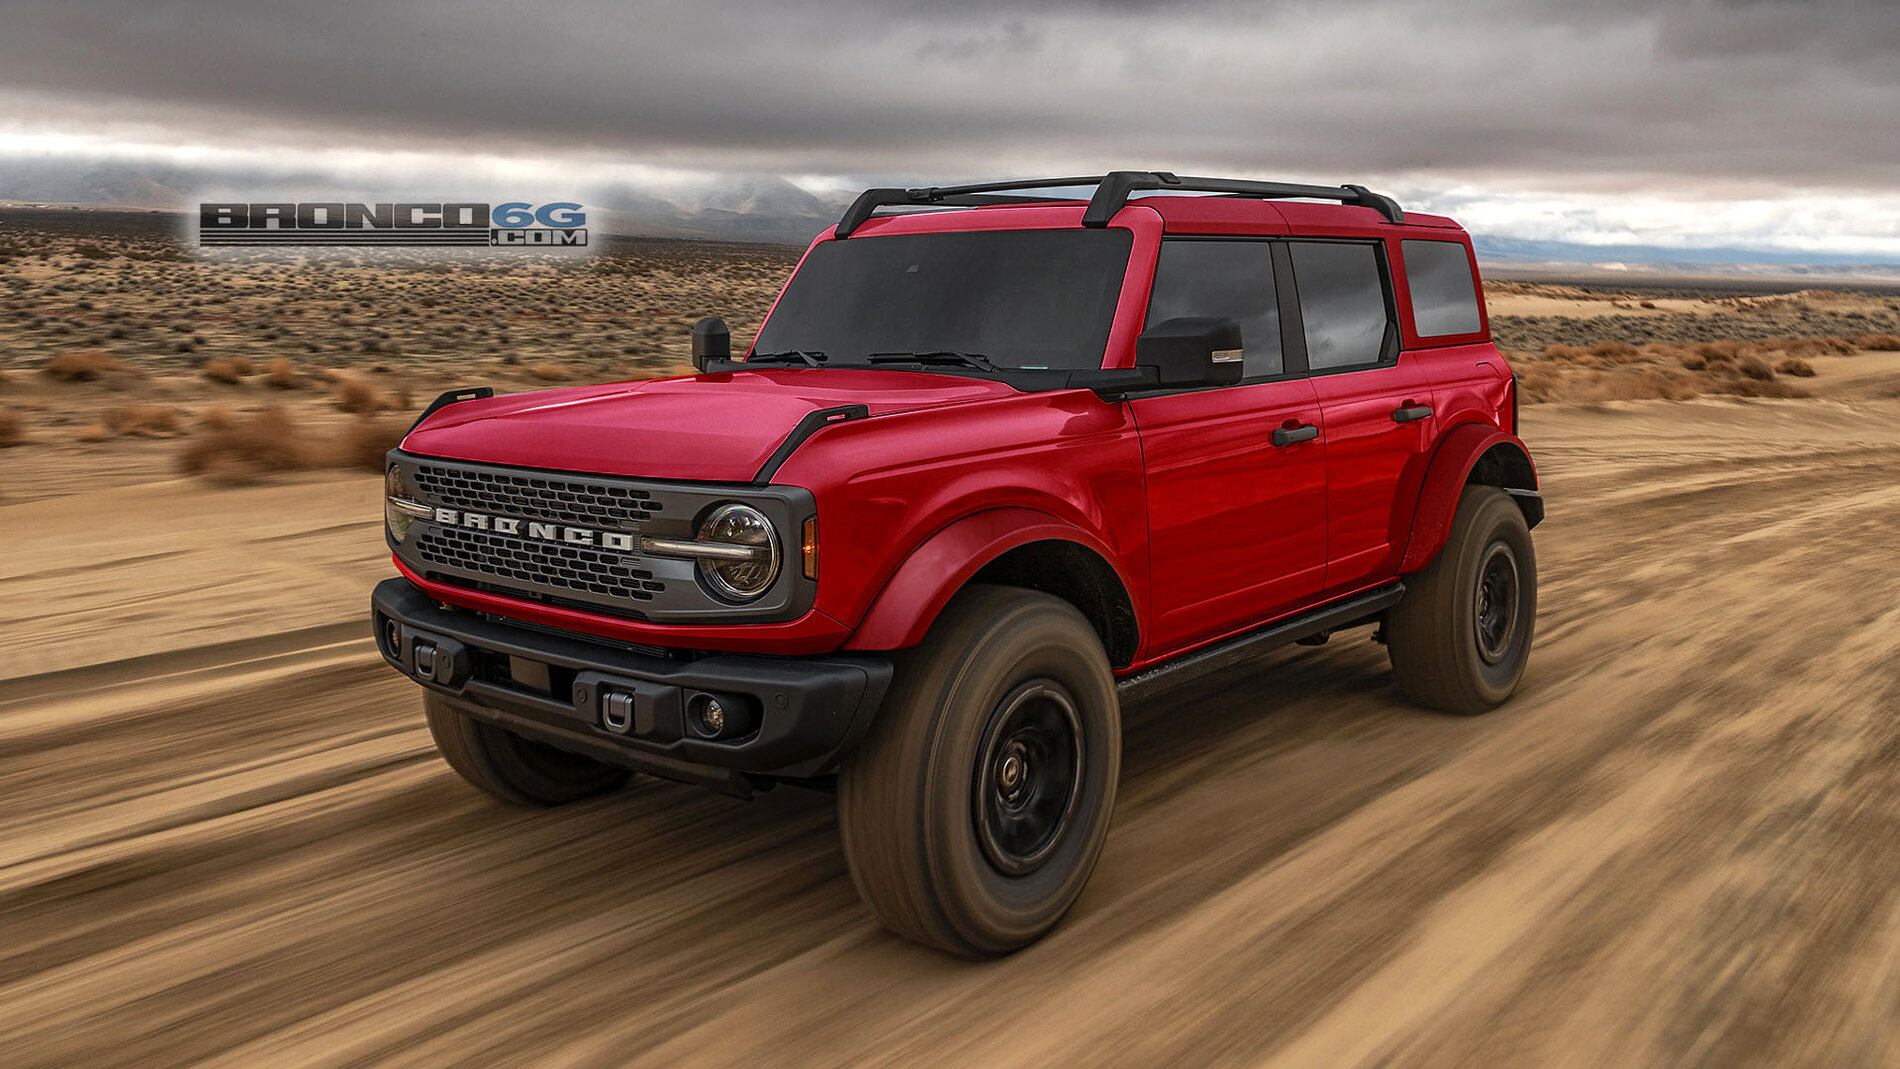 2021 Ford Bronco Sasquatch Rapid-Red-fullBronco6G.com.jpg